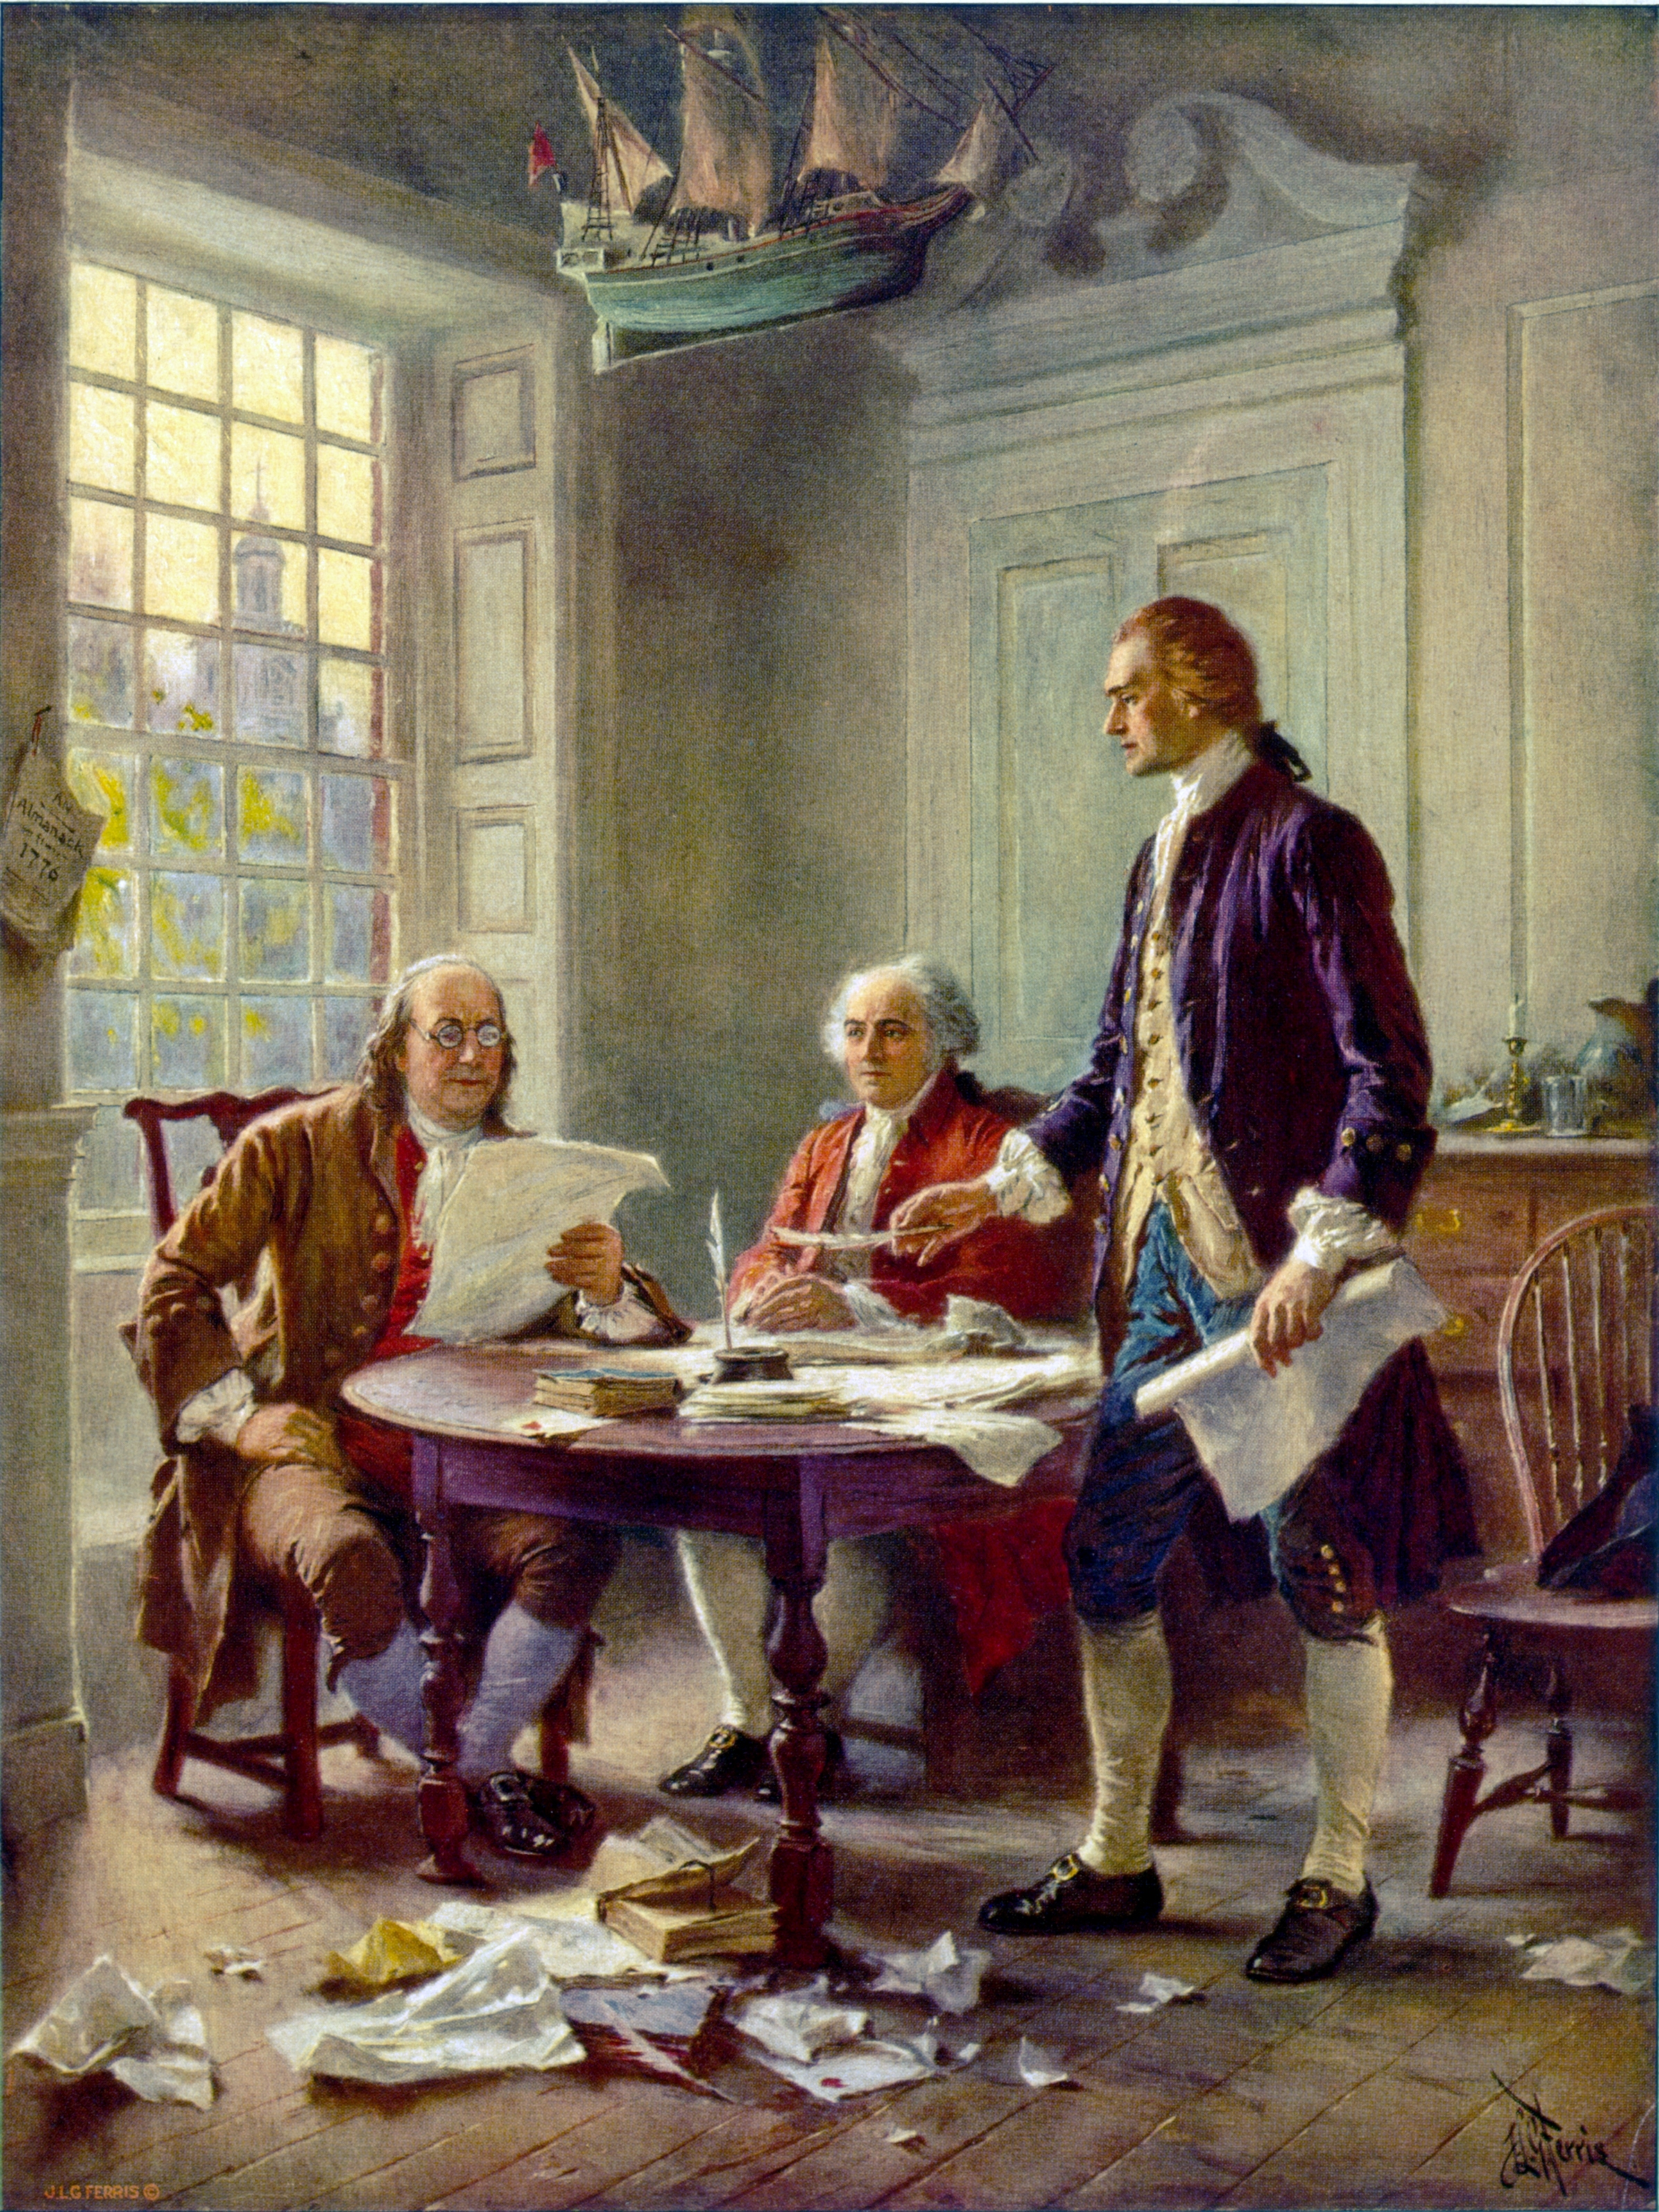 This idealized depiction of Thomas Jefferson (right), Benjamin Franklin (left), and John Adams (center) working on the Declaration of Independence was widely reprinted. The painting by Jean Leon Gerome Ferris, an American painter best known for his series of 78 scenes from American history entitled